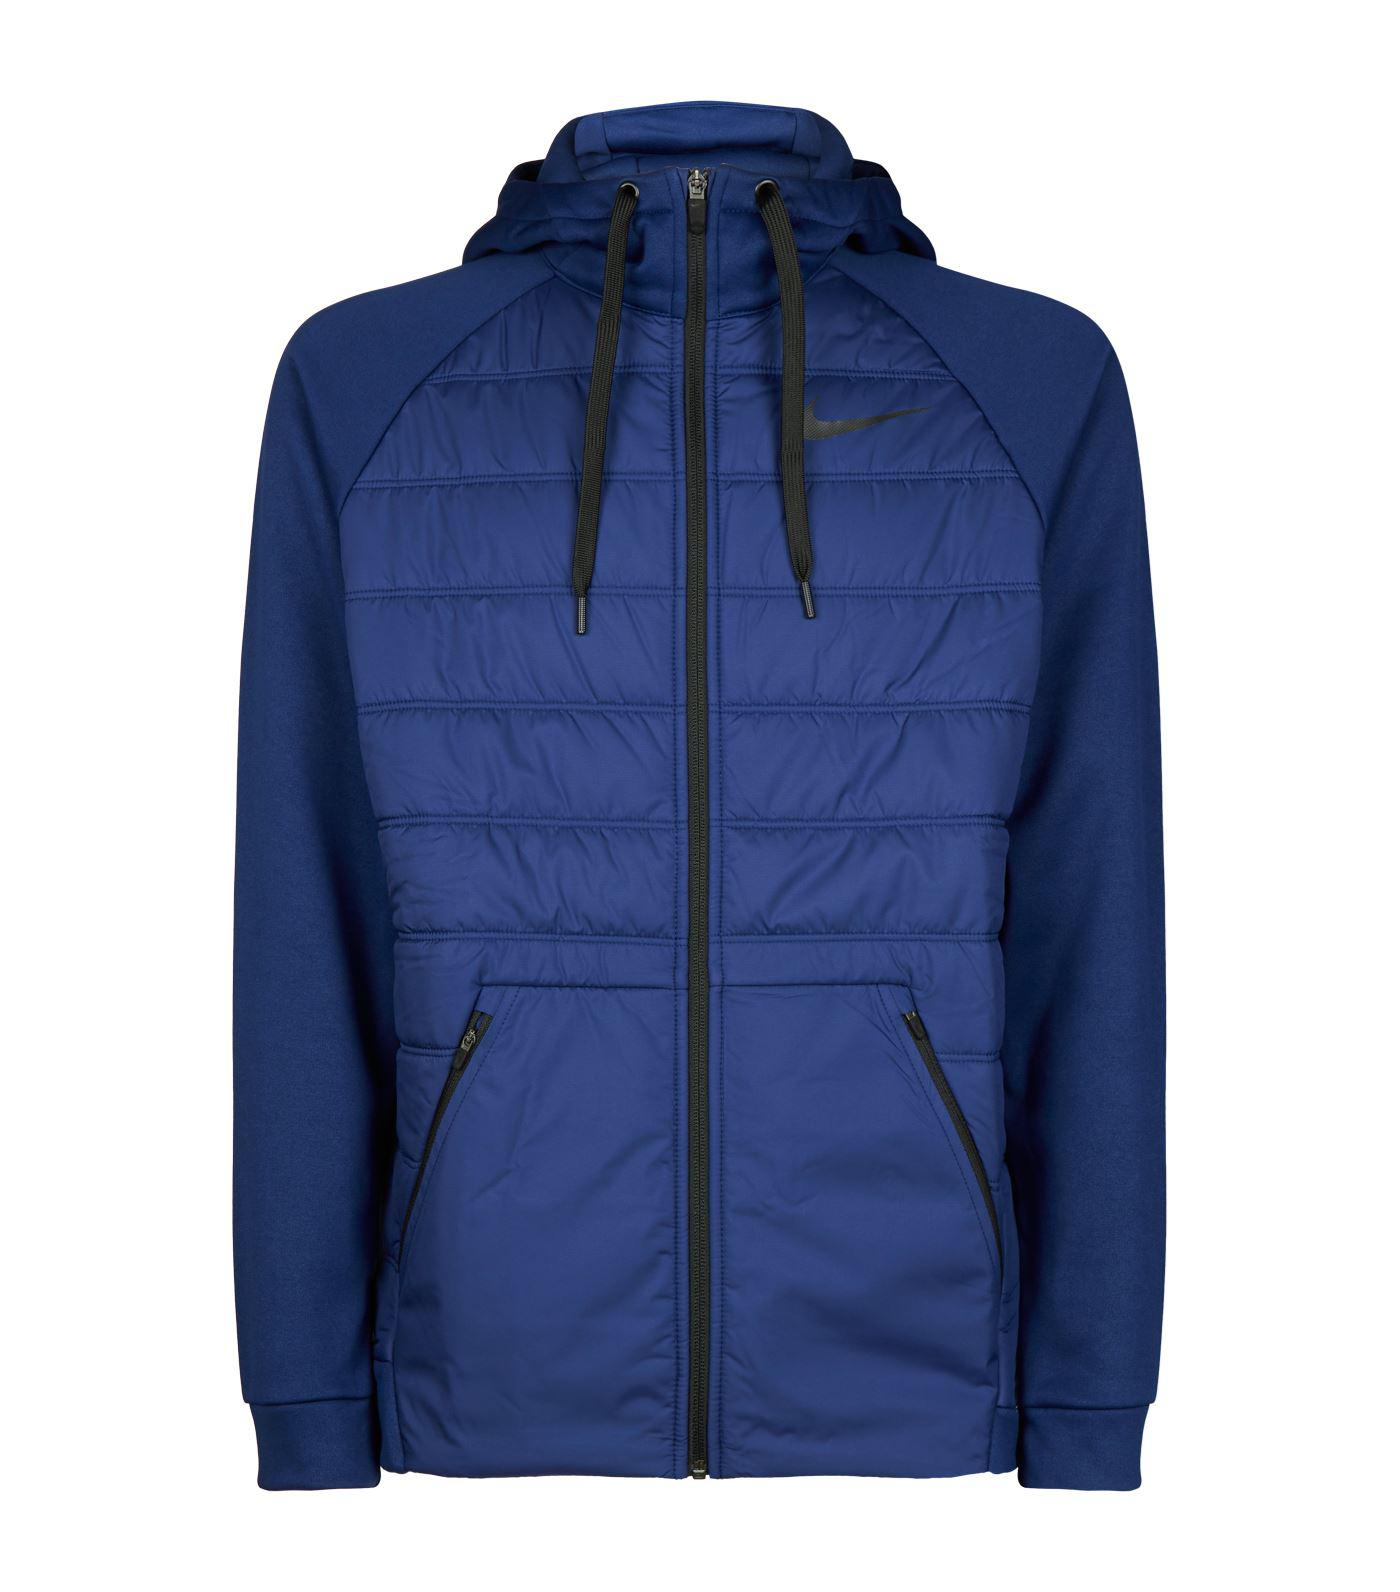 Nike Insulated Quilted Hoodie in Blue for Men - Lyst eb8373ec2e98